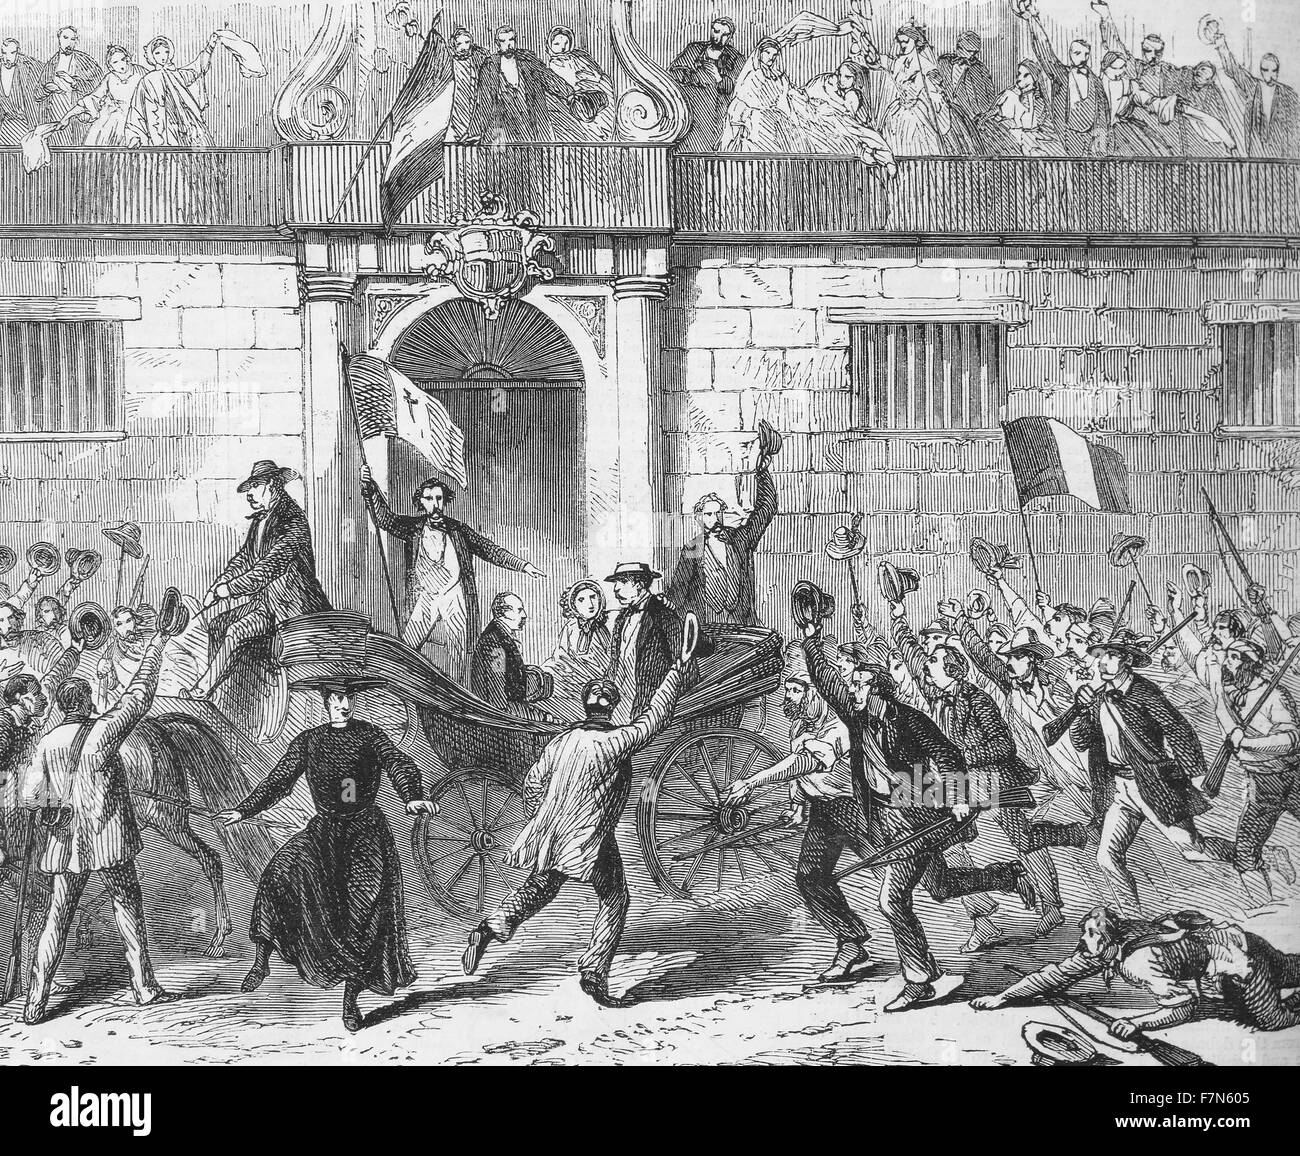 The release of political prisoners from the Castlemare, Palermo, on June 19th. From a sketch by artist Frank Vizetelly. Stock Photo